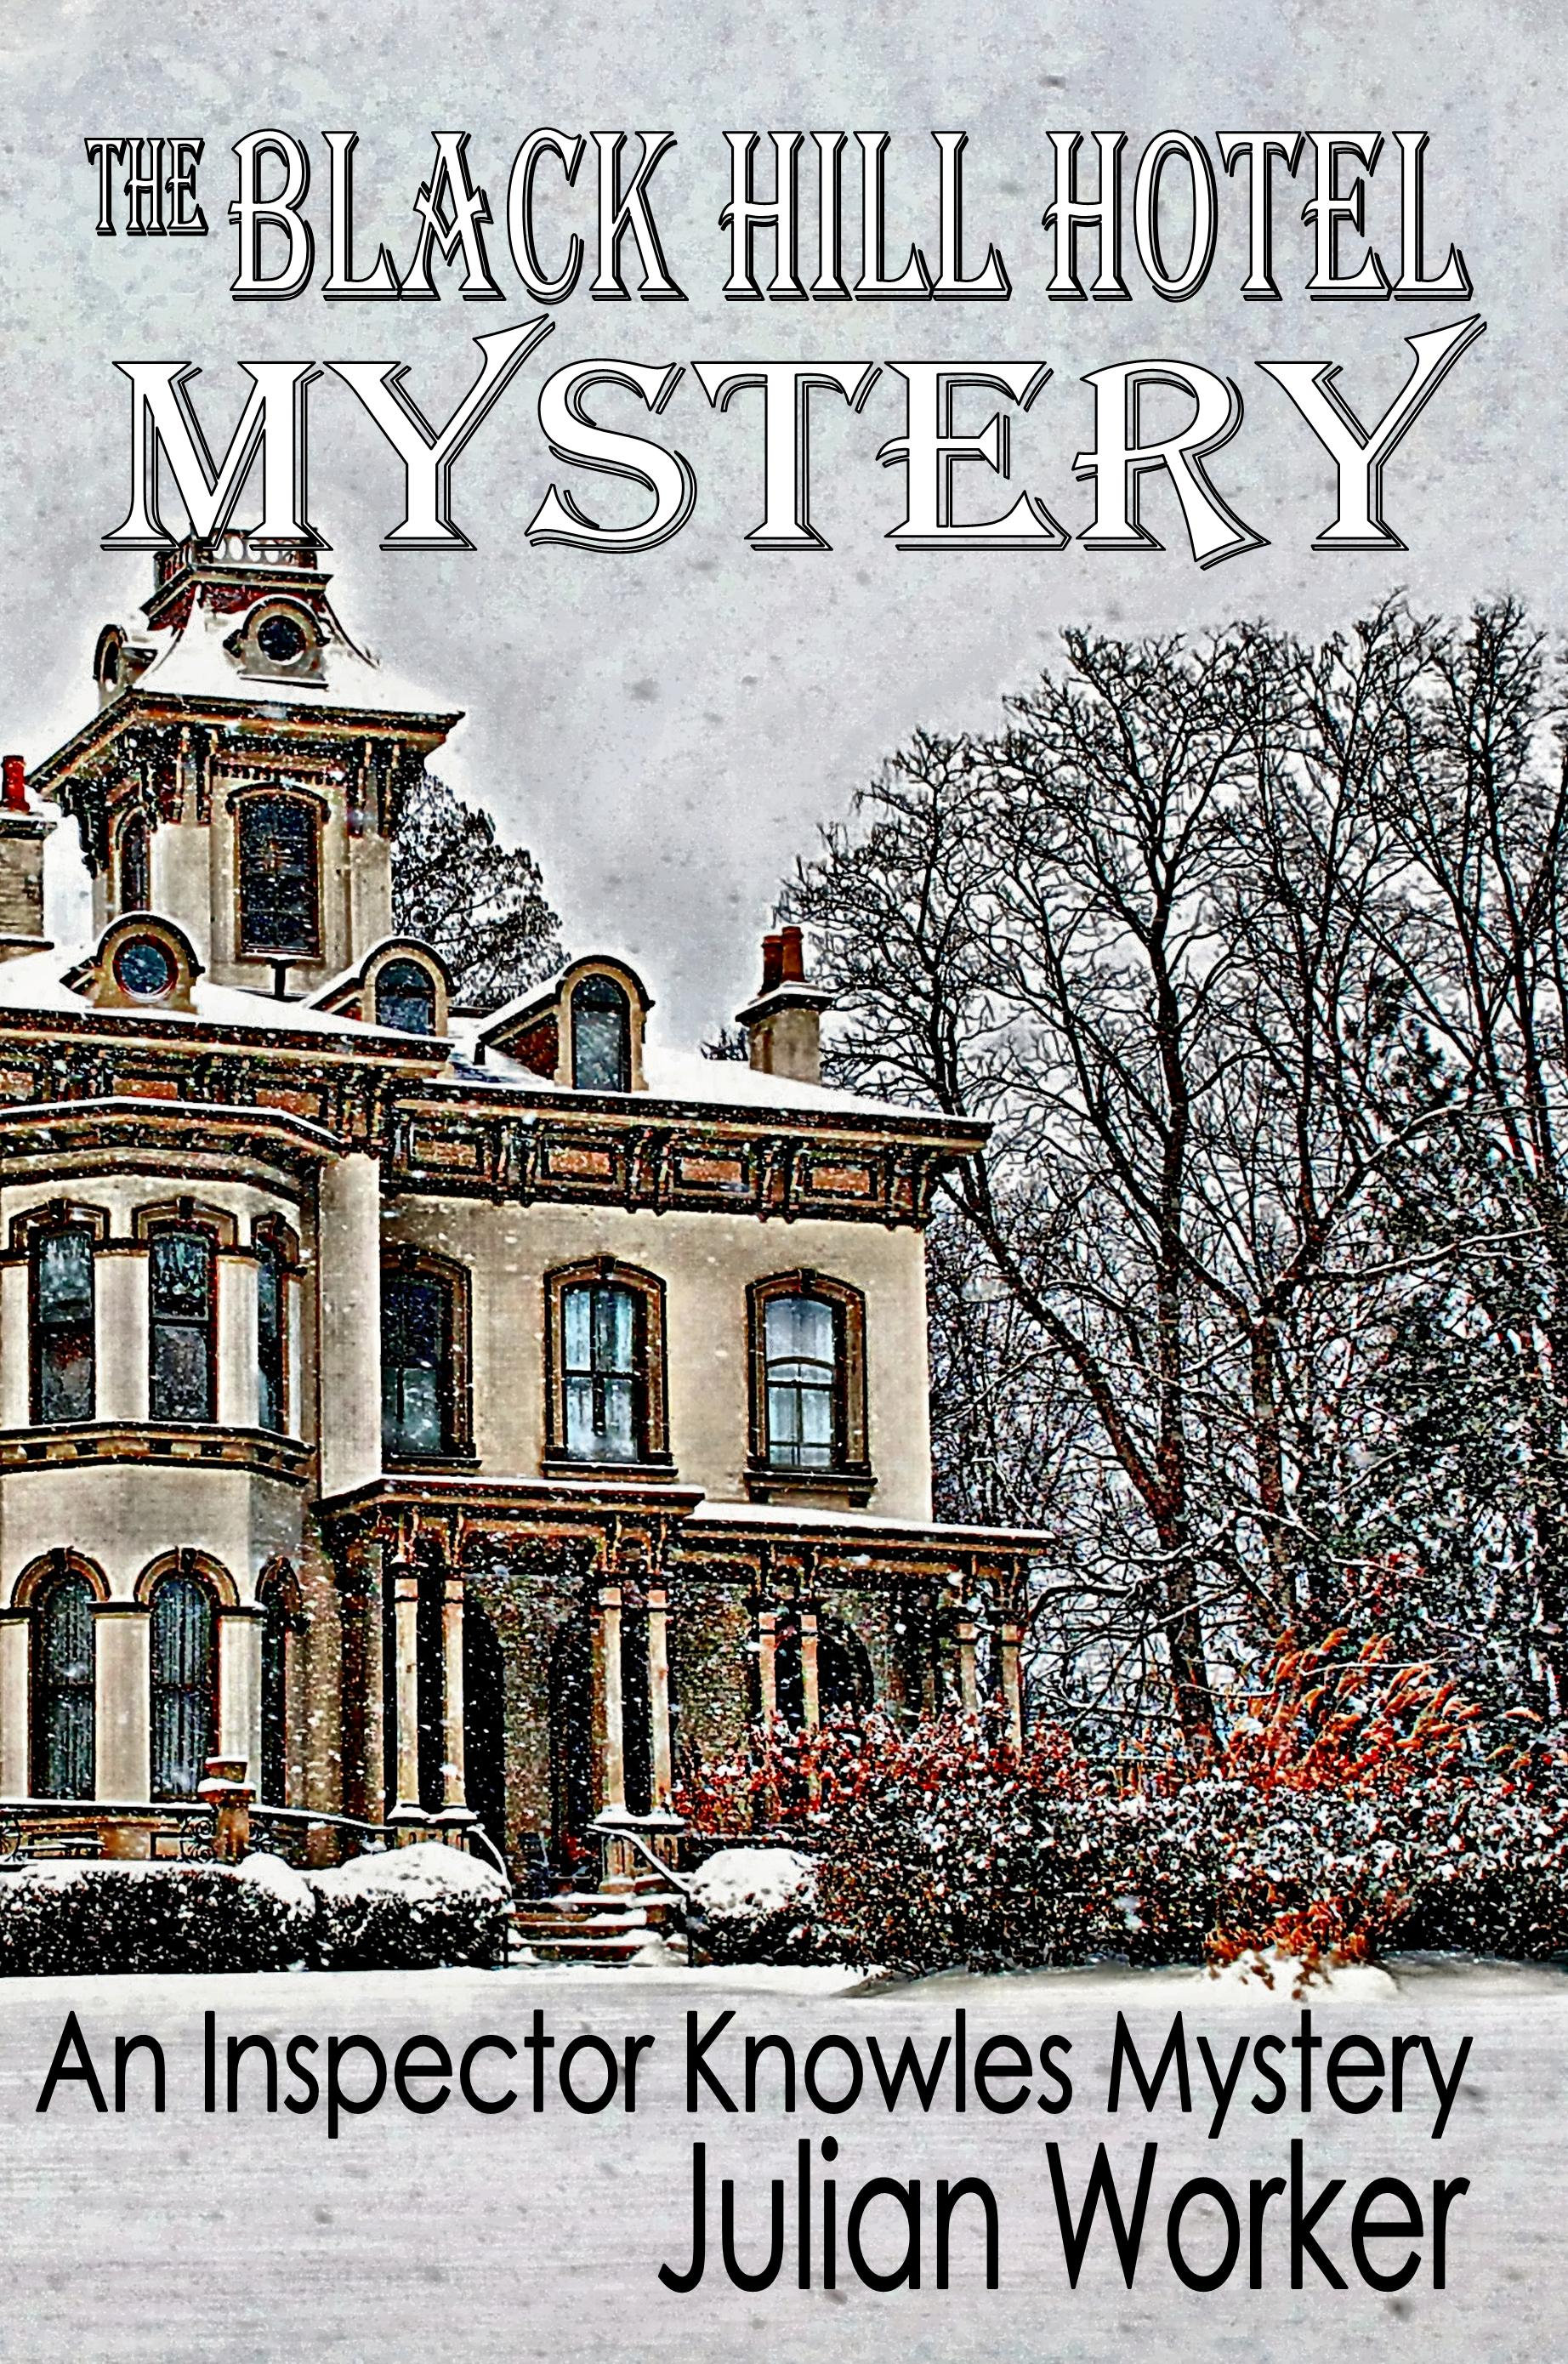 The Black Hill Hotel Mystery – 38